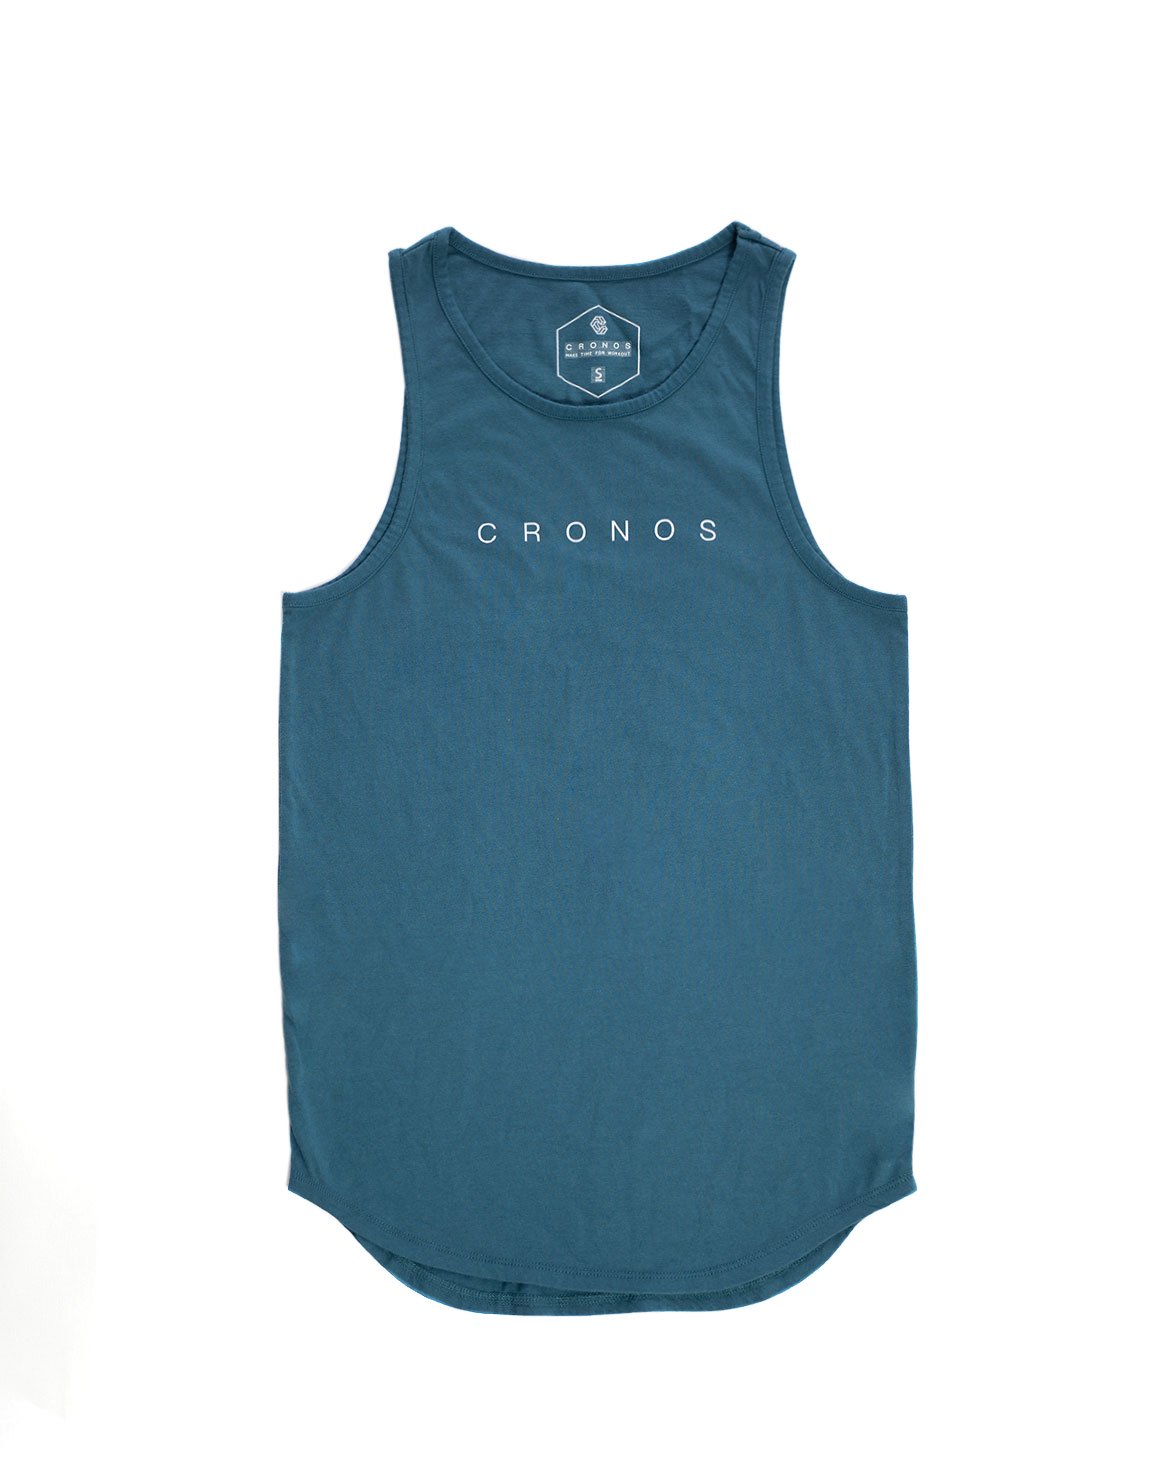 <img class='new_mark_img1' src='https://img.shop-pro.jp/img/new/icons1.gif' style='border:none;display:inline;margin:0px;padding:0px;width:auto;' />CRONOS LOGO TANKTOP BLUE